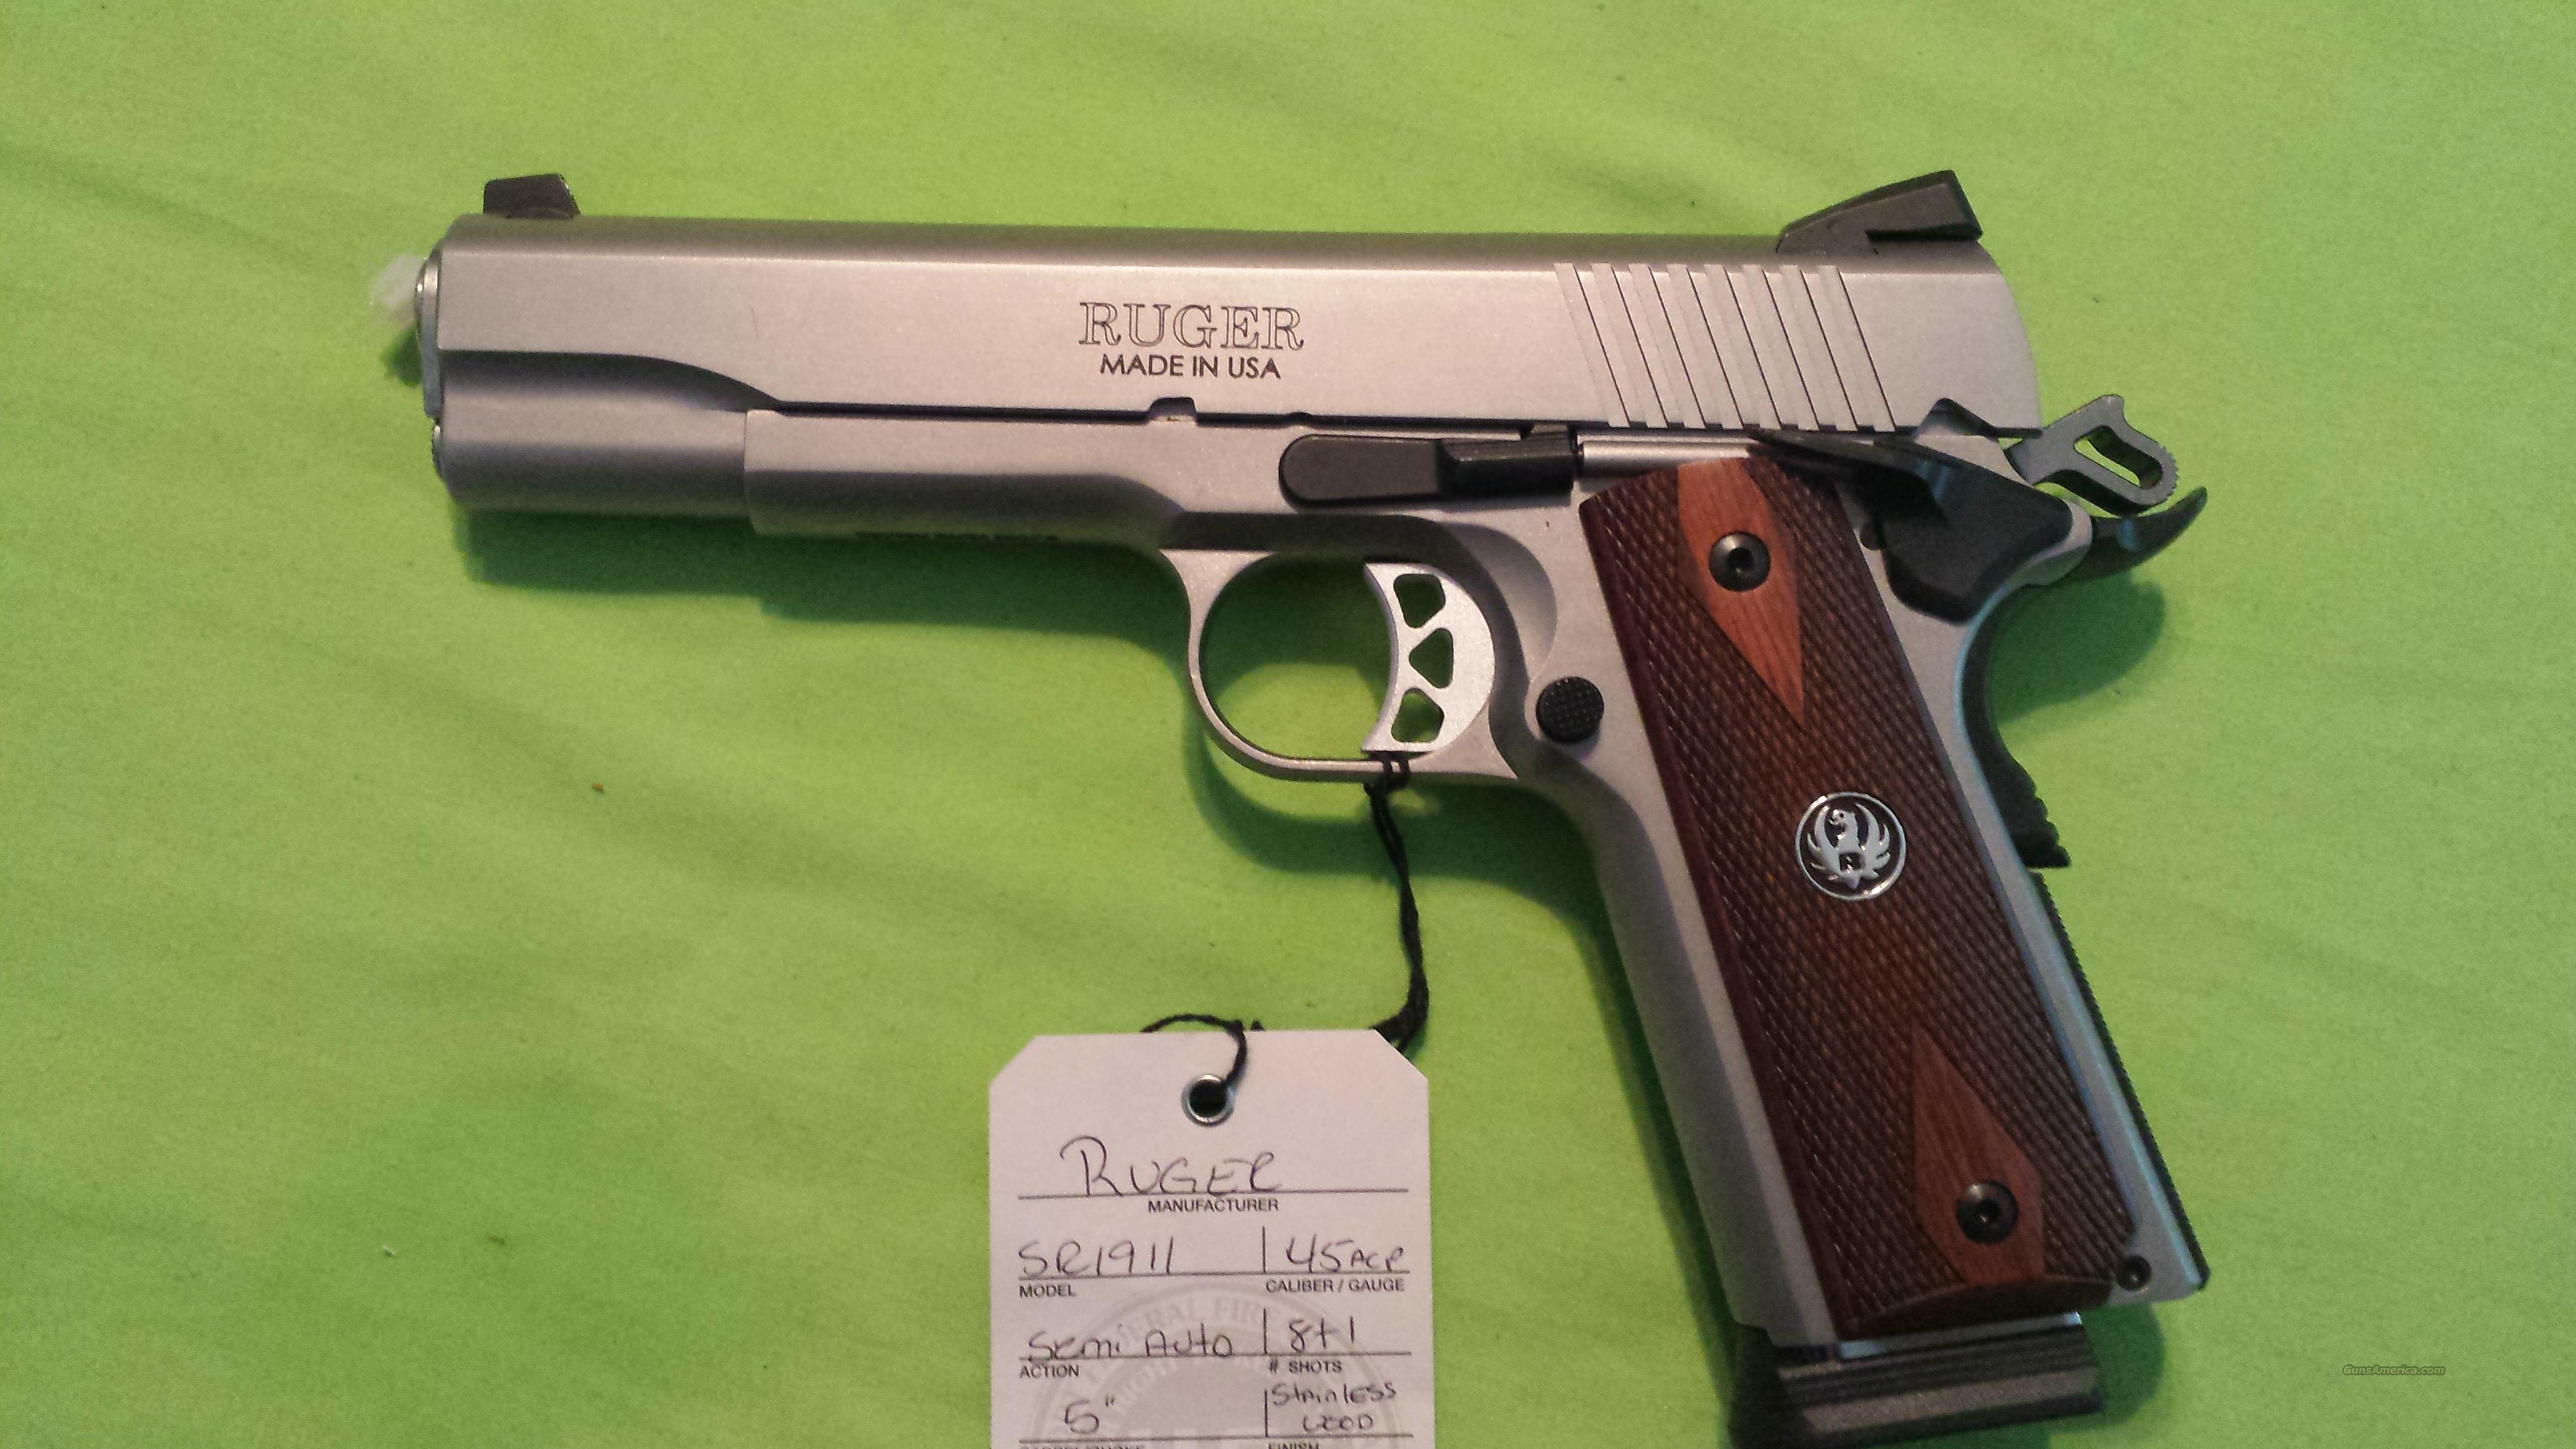 RUGER SR1911 SR 1911 45 ACP 5 STAINLESS 2 mags  Guns > Pistols > Ruger Semi-Auto Pistols > SR9/SR40/SR45